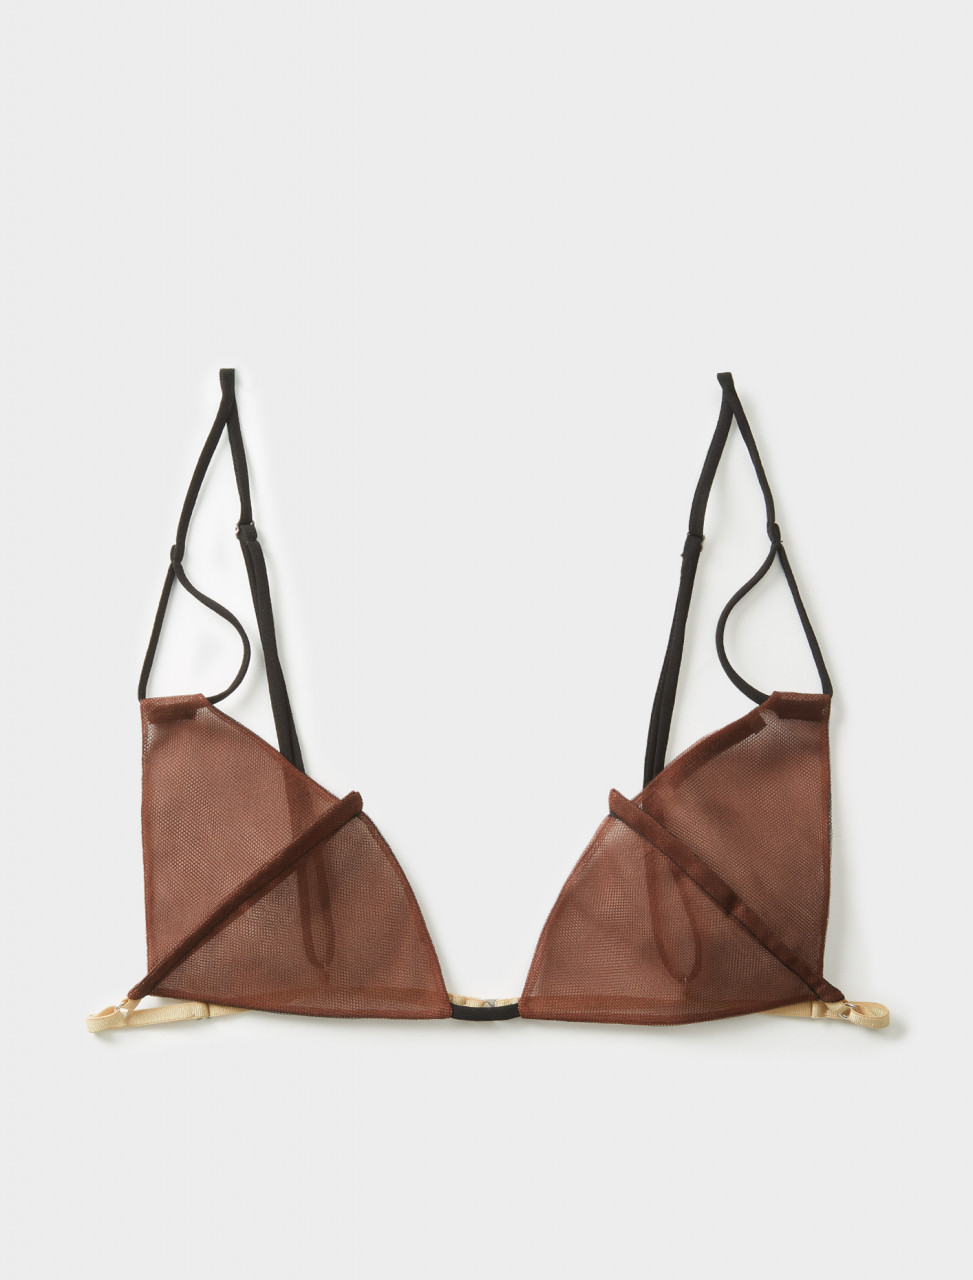 Nensi Dojaka Triangle Bra in Black & Brown Front